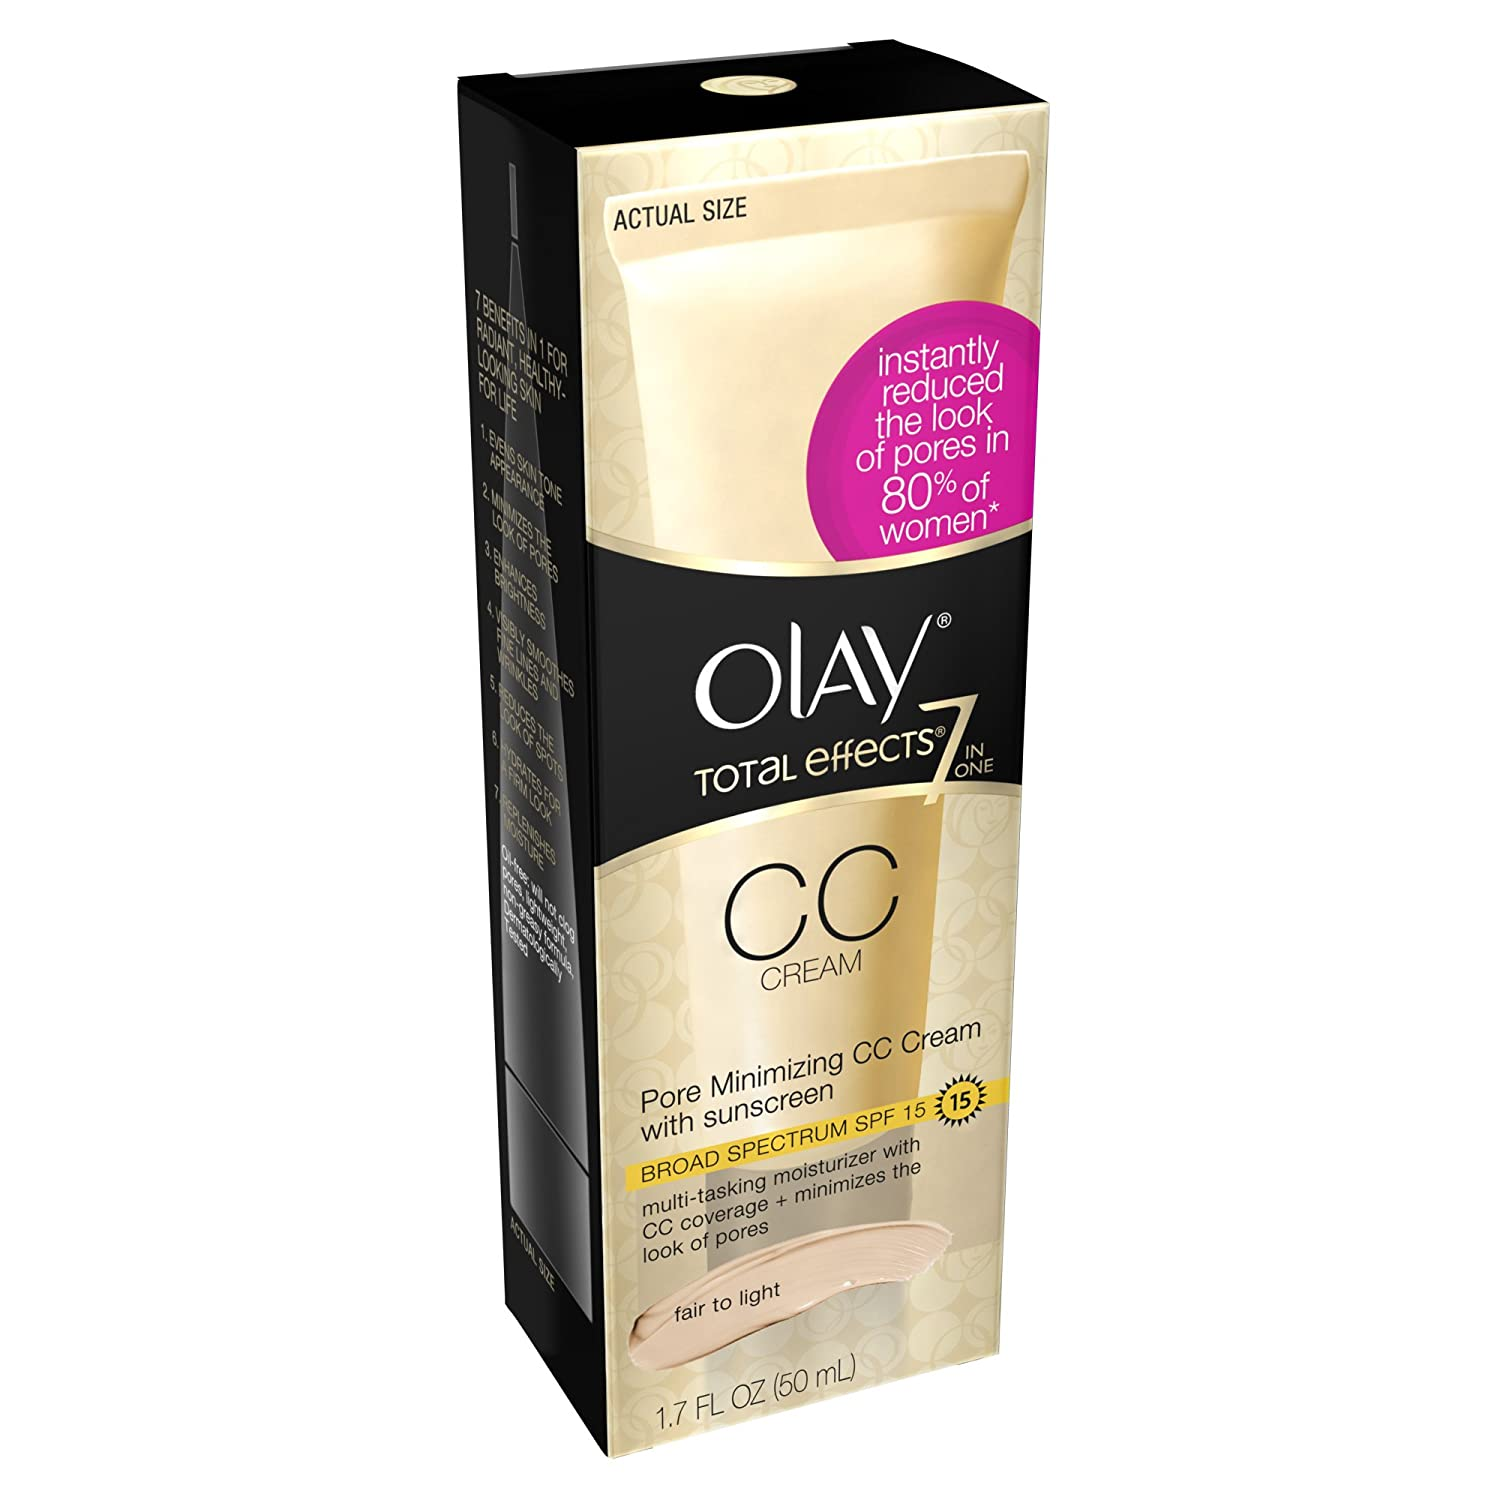 Olay Total Effects Pore Minimizing Cc Cream Fair To Light, 1.7 Fl Oz NA